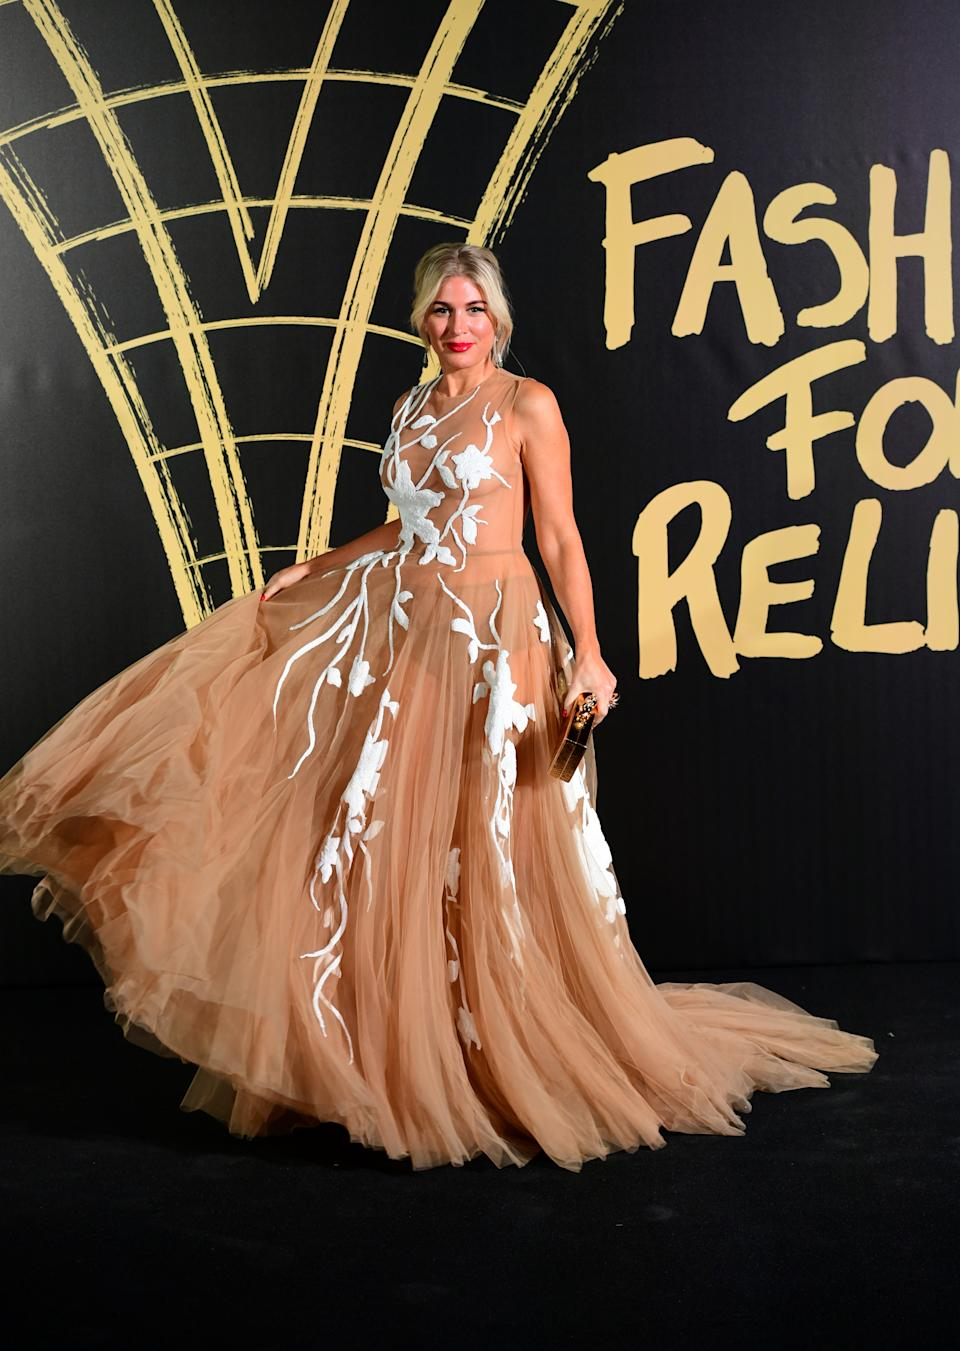 Hofit Golan arriving on the red carpet for Naomi Campbell's Fashion For Relief Gala during London Fashion Week [Photo: PA]